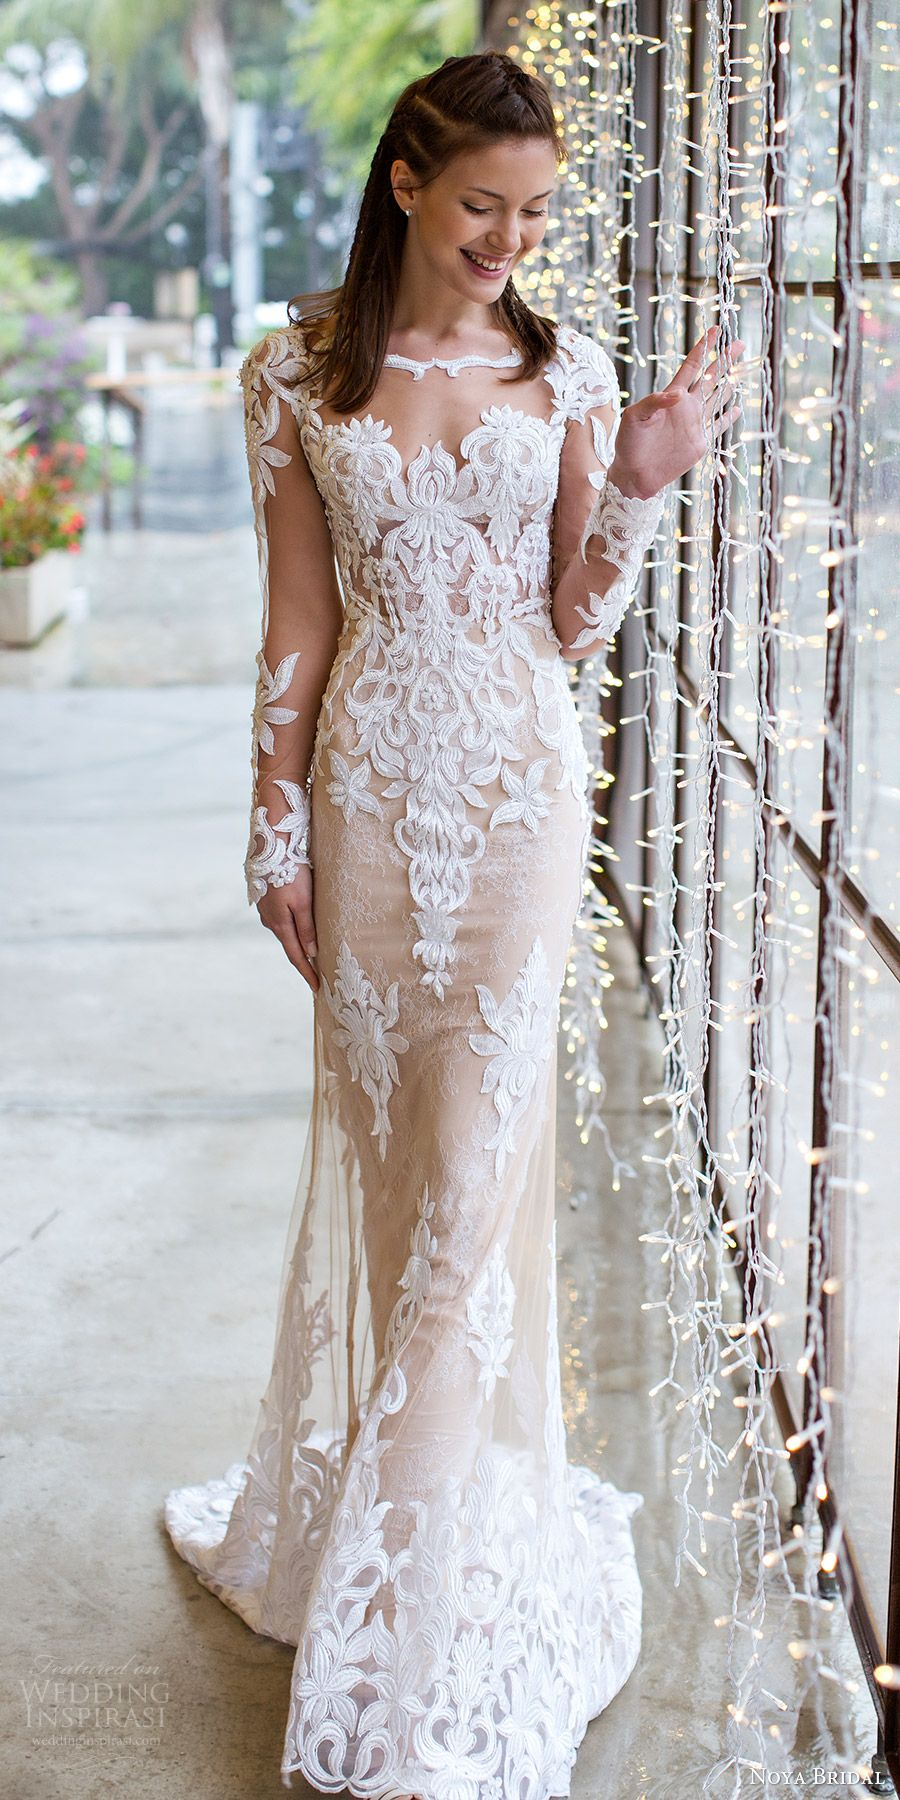 Noya Bridal Aria Collection Wedding Dresses